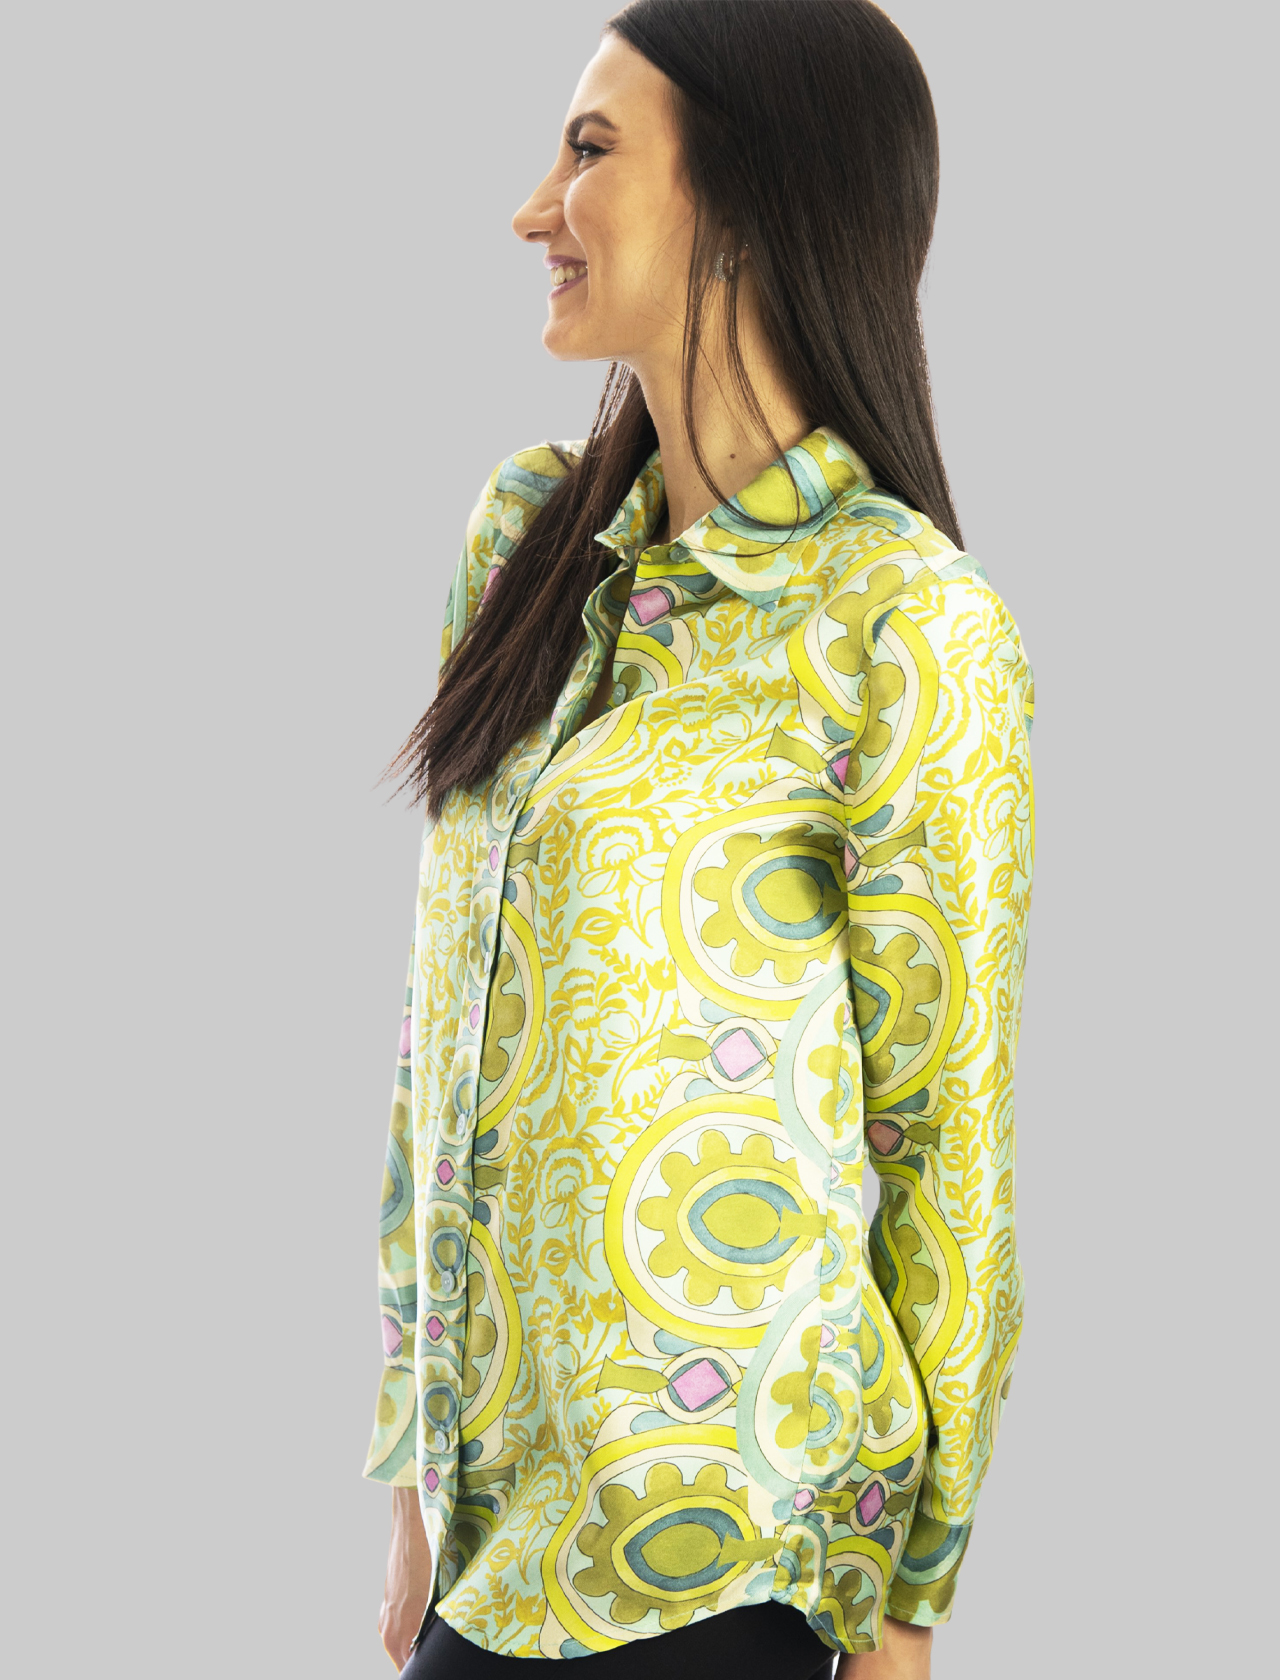 Women's Clothing Collection Print Shirt in Pure Green Printed Silk Maliparmi | Shirts and tops | JM214430091C6032